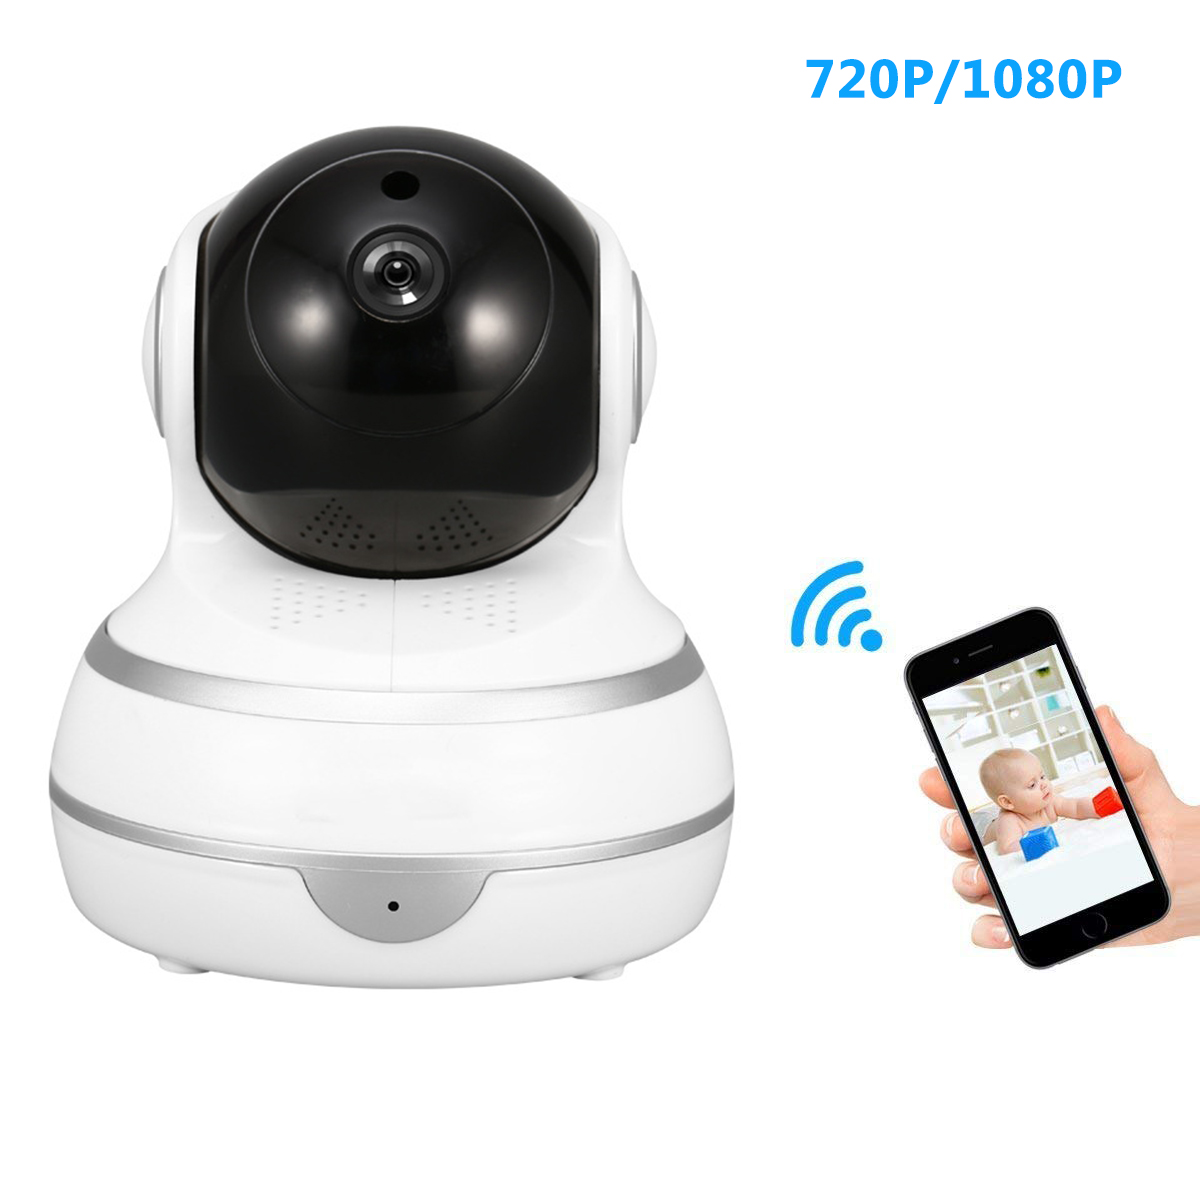 SOONHUA 720P/1080P HD Home Security IP Camera Wireless Night Vision Surveillance Camera With HD Mic For Pet Baby MonitorSOONHUA 720P/1080P HD Home Security IP Camera Wireless Night Vision Surveillance Camera With HD Mic For Pet Baby Monitor